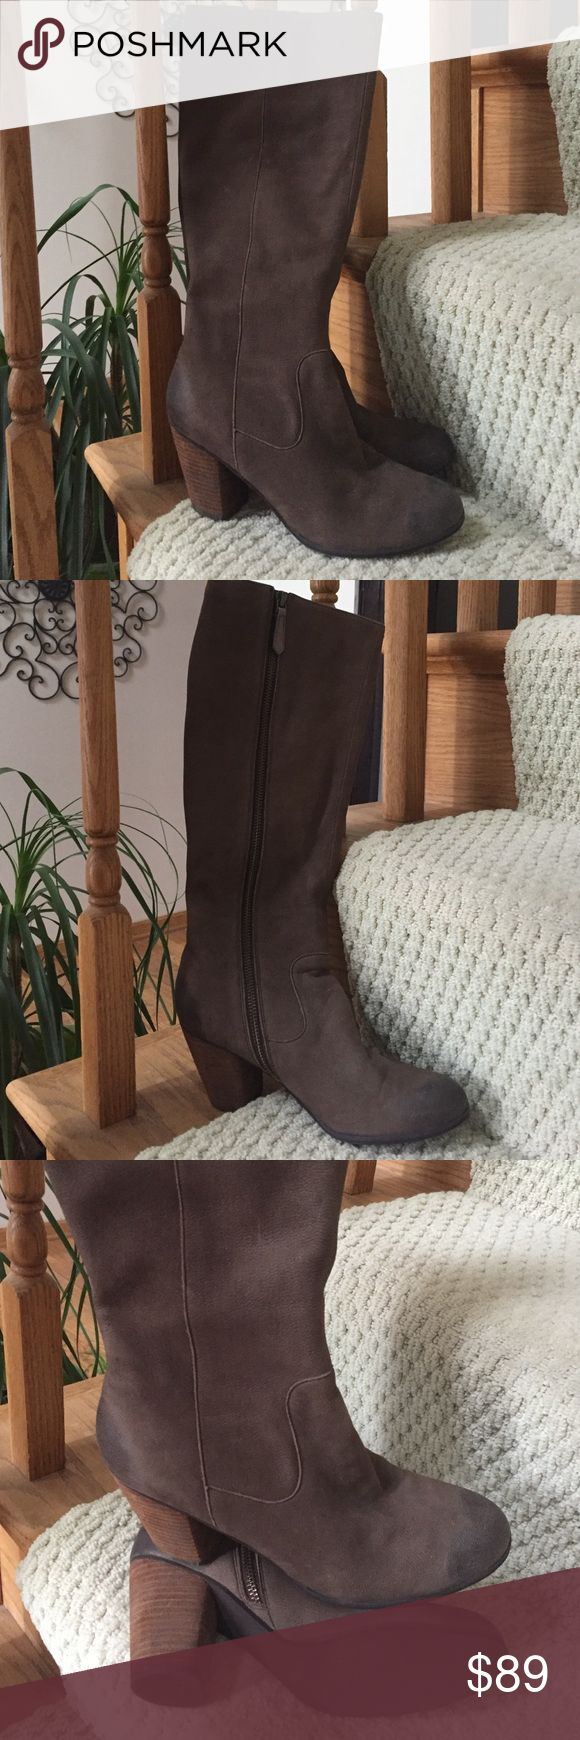 Nordstrom Boots 7.5 Nordstrom Tall boots. Size 7.5   The brand is BP   These have only been worn 1 time. Excellent condition. BP Shoes Heeled Boots